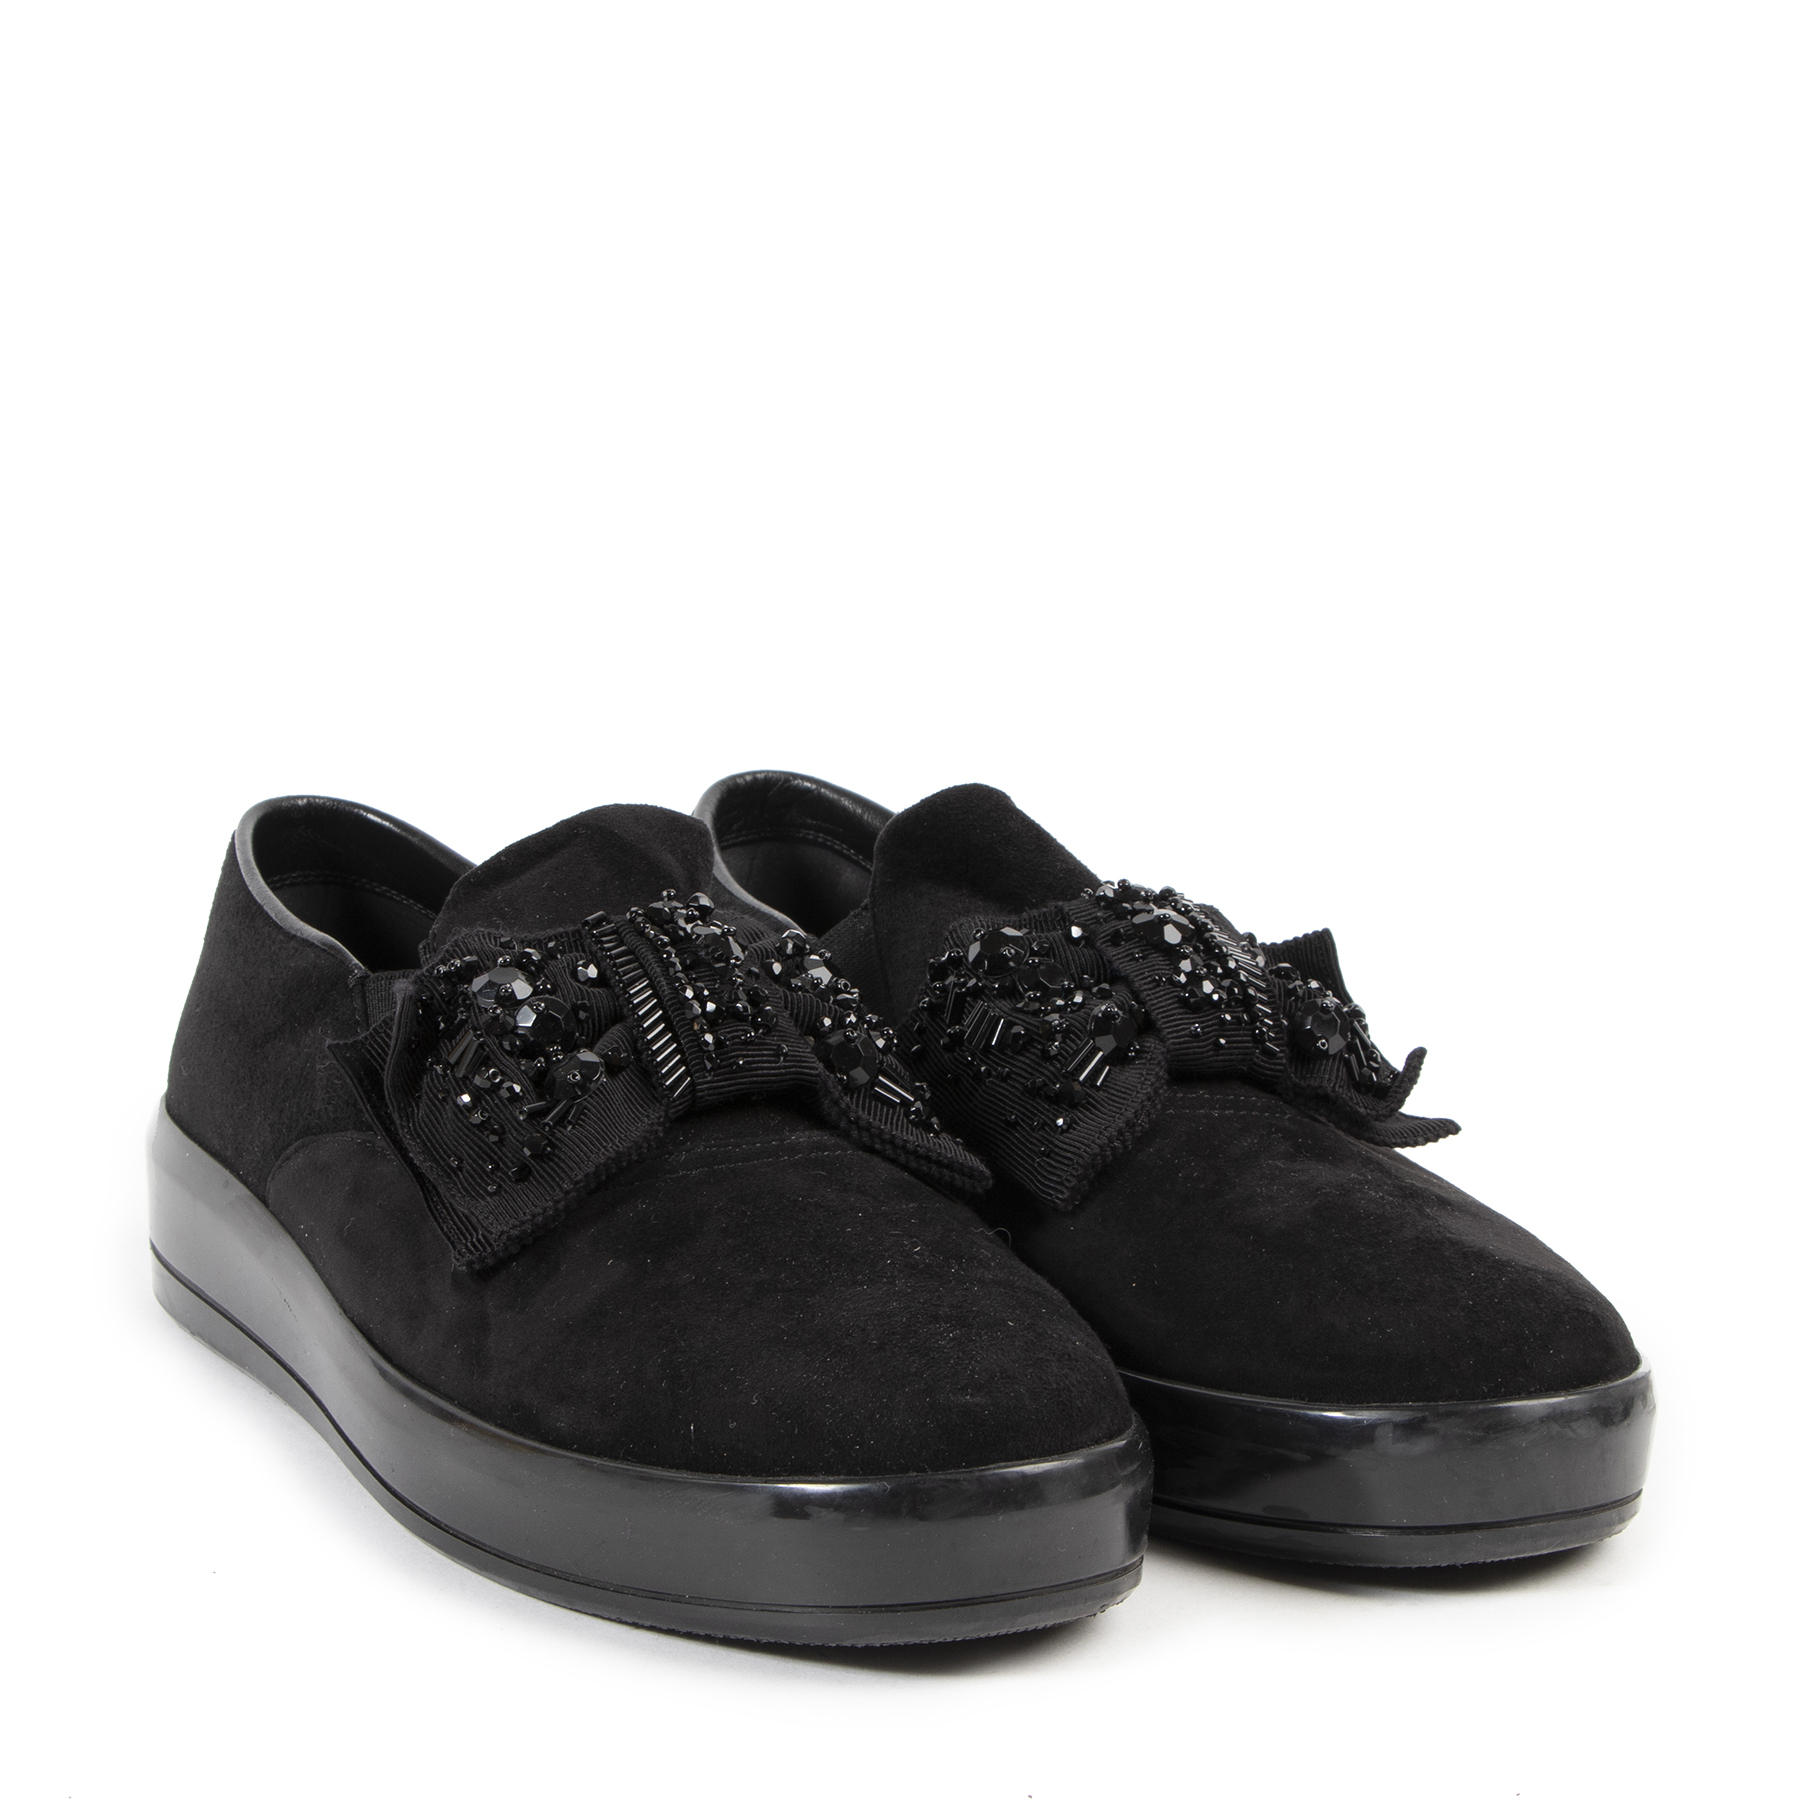 Prada Black Suede Bow Slip-on Loafers - size 39